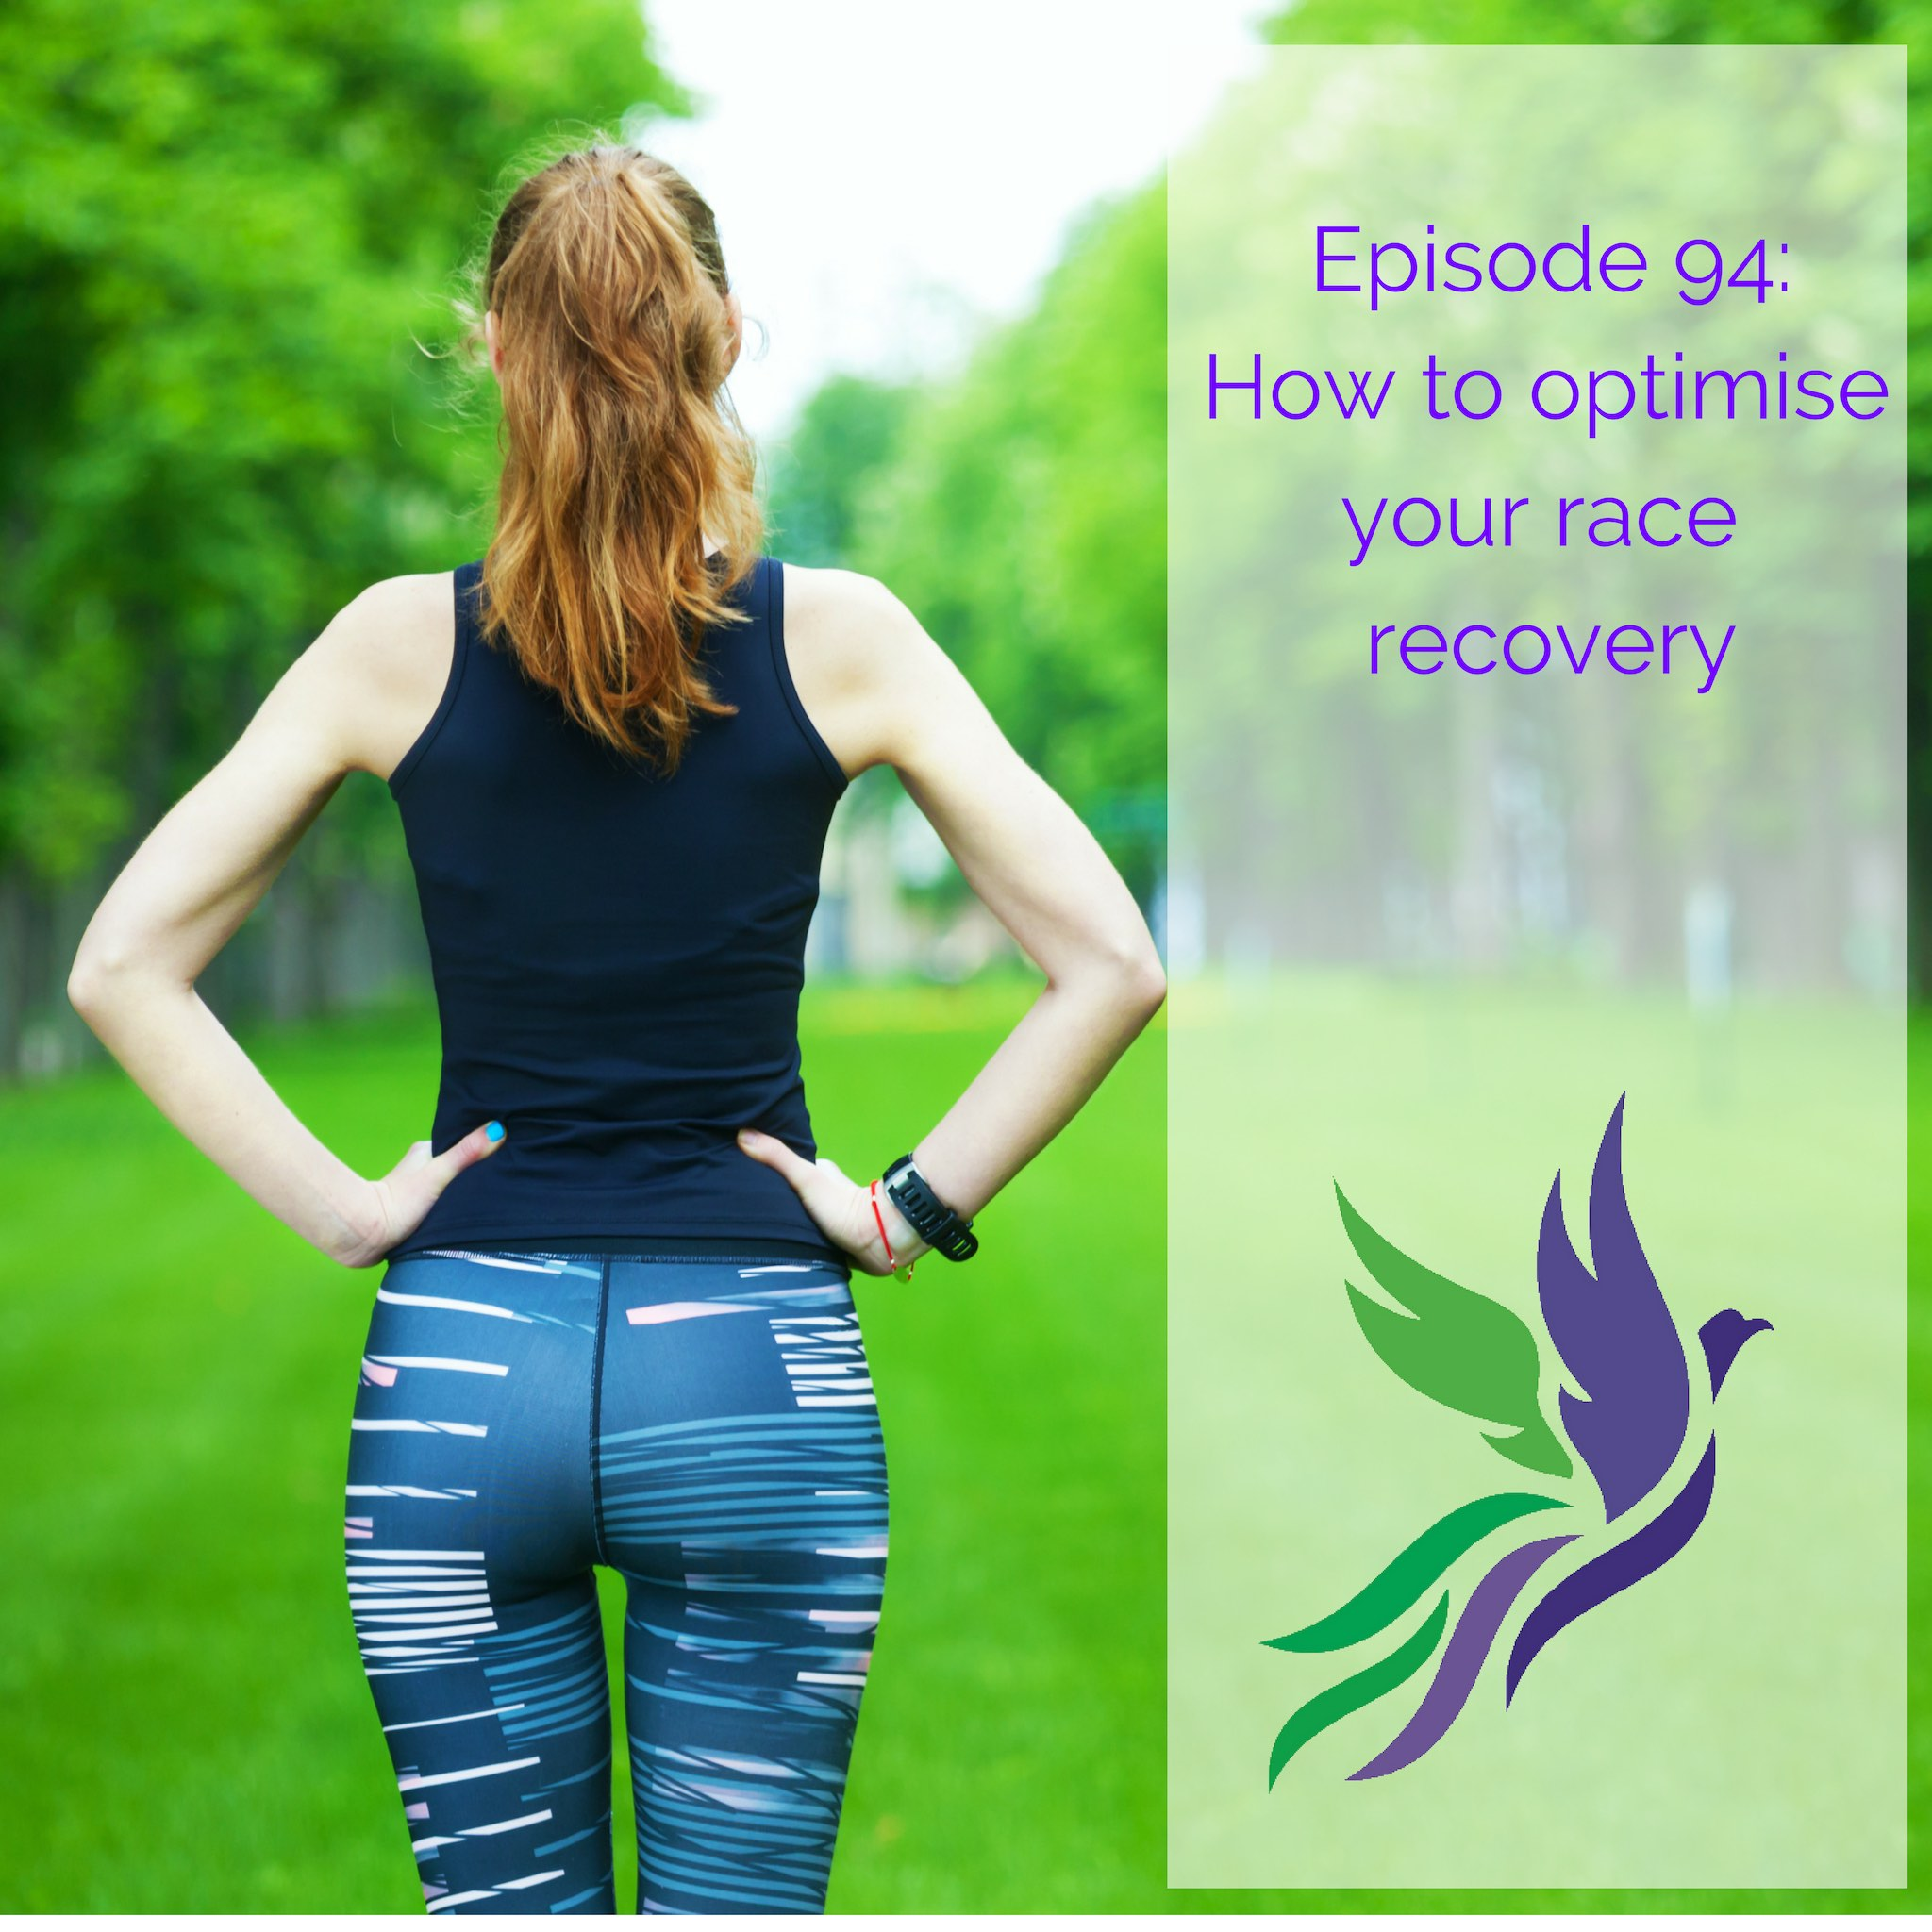 #94 How to optimise your race recovery